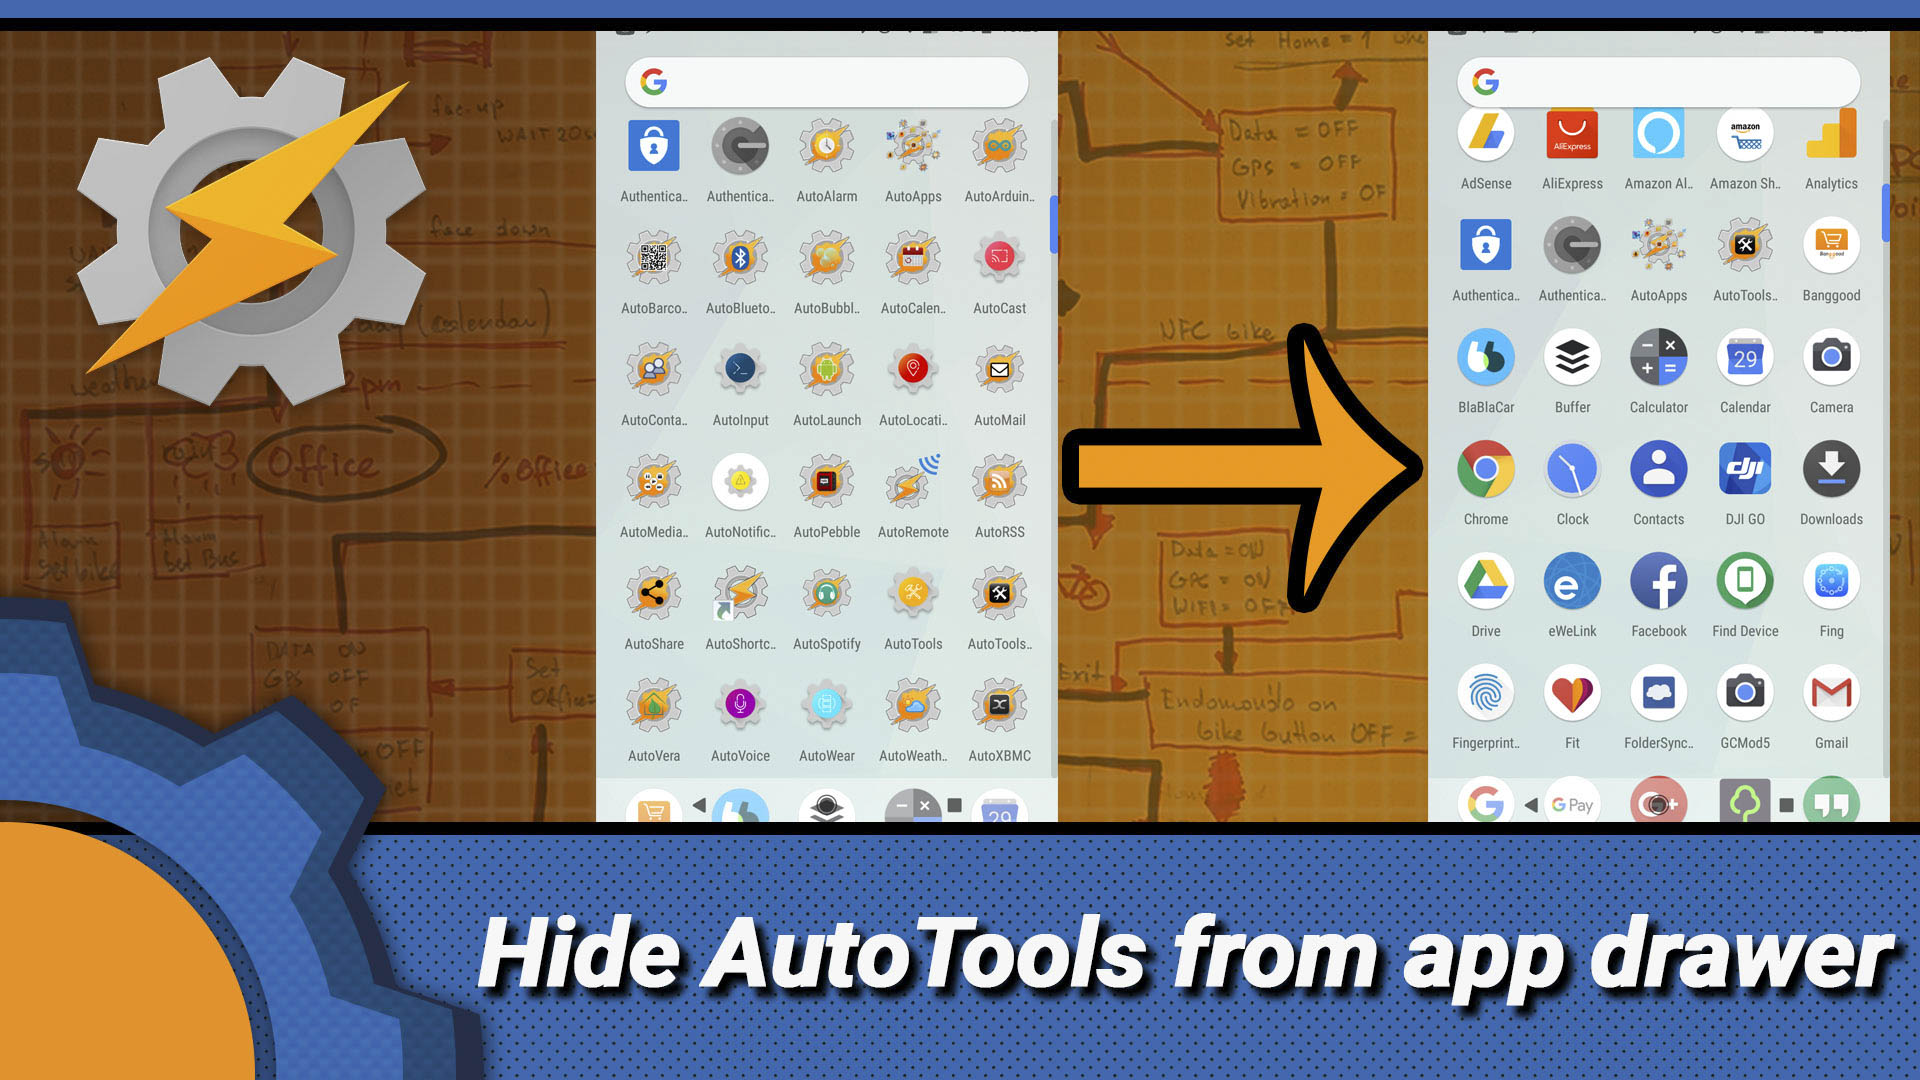 Annoyed with dozens of AutoApps populating your app drawer